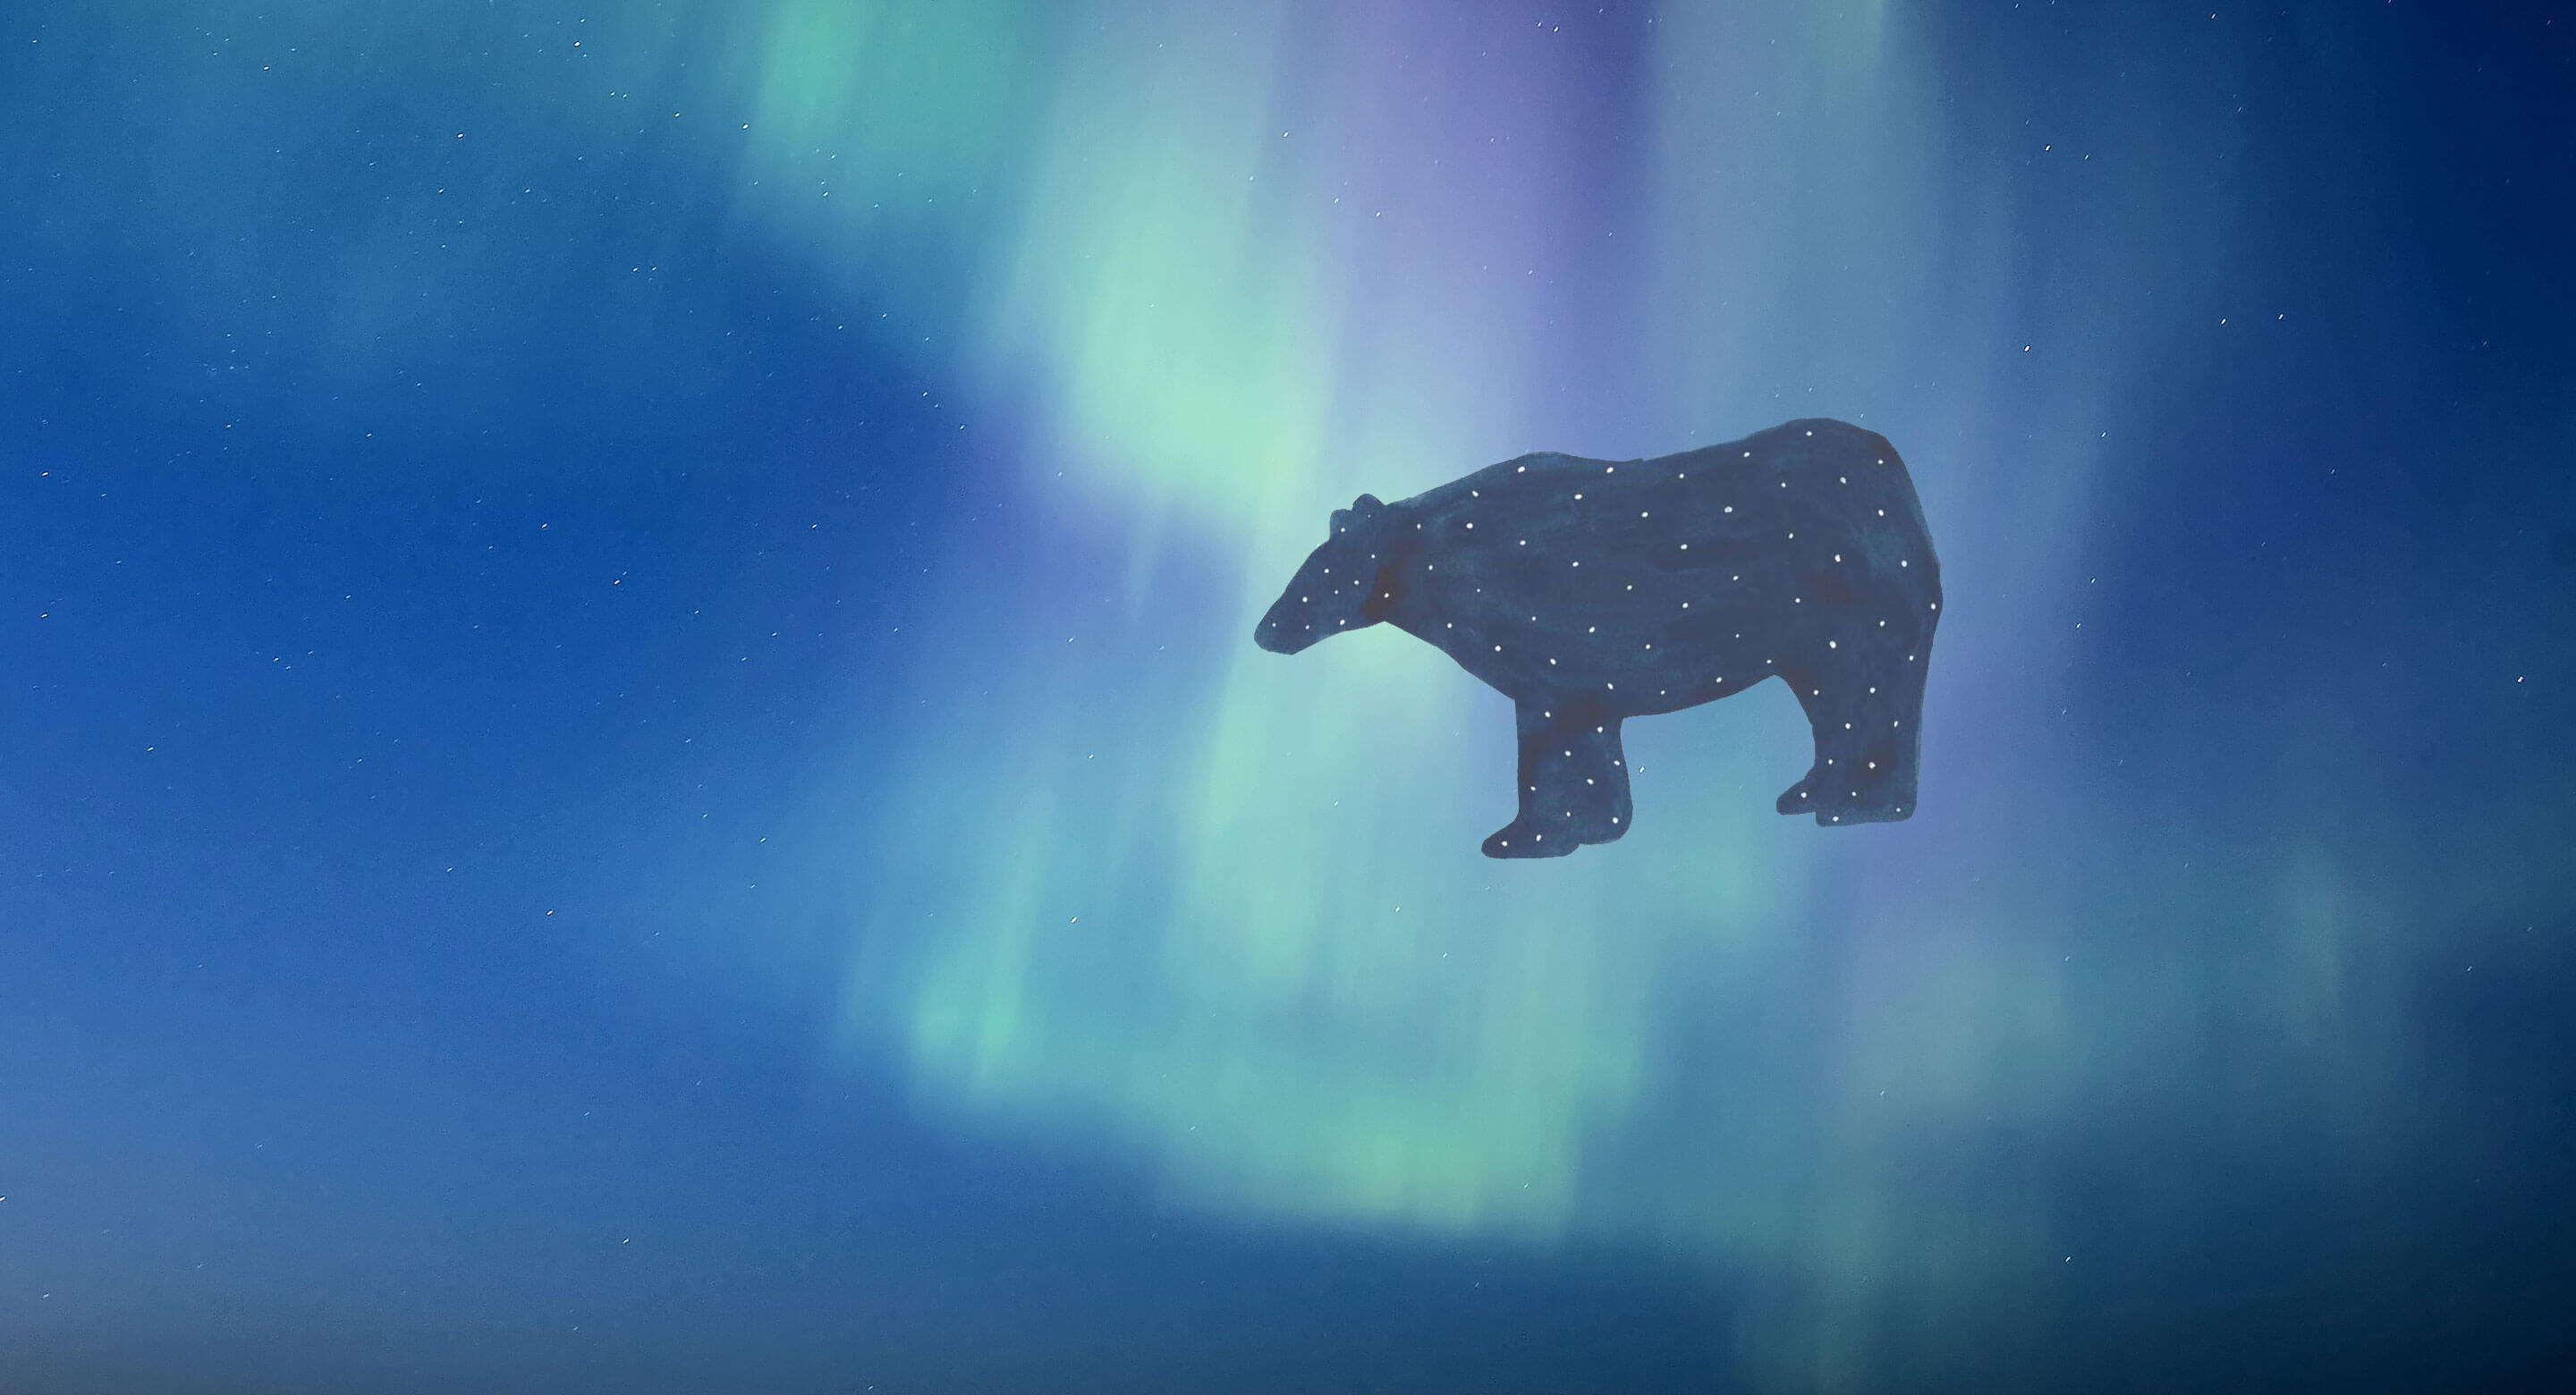 Shkaabe Makwa masthead with bear illustration and Northern Lights